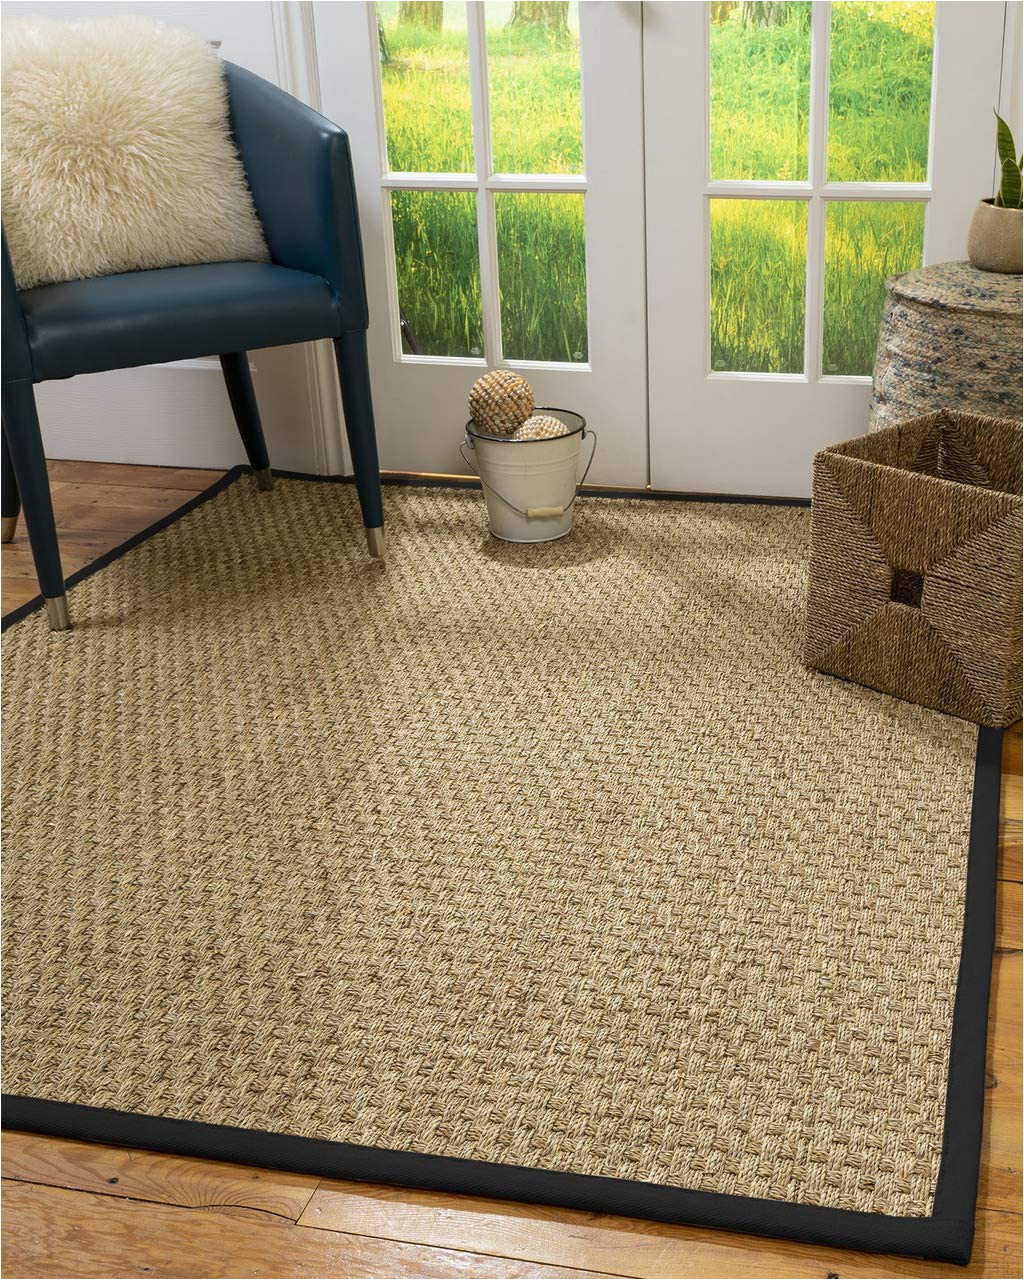 Organic area Rugs Made In Usa Naturalarearugs Optimum area Rug Natural Seagrass Hand Crafted Black Wide Canvas Border 8 X 10